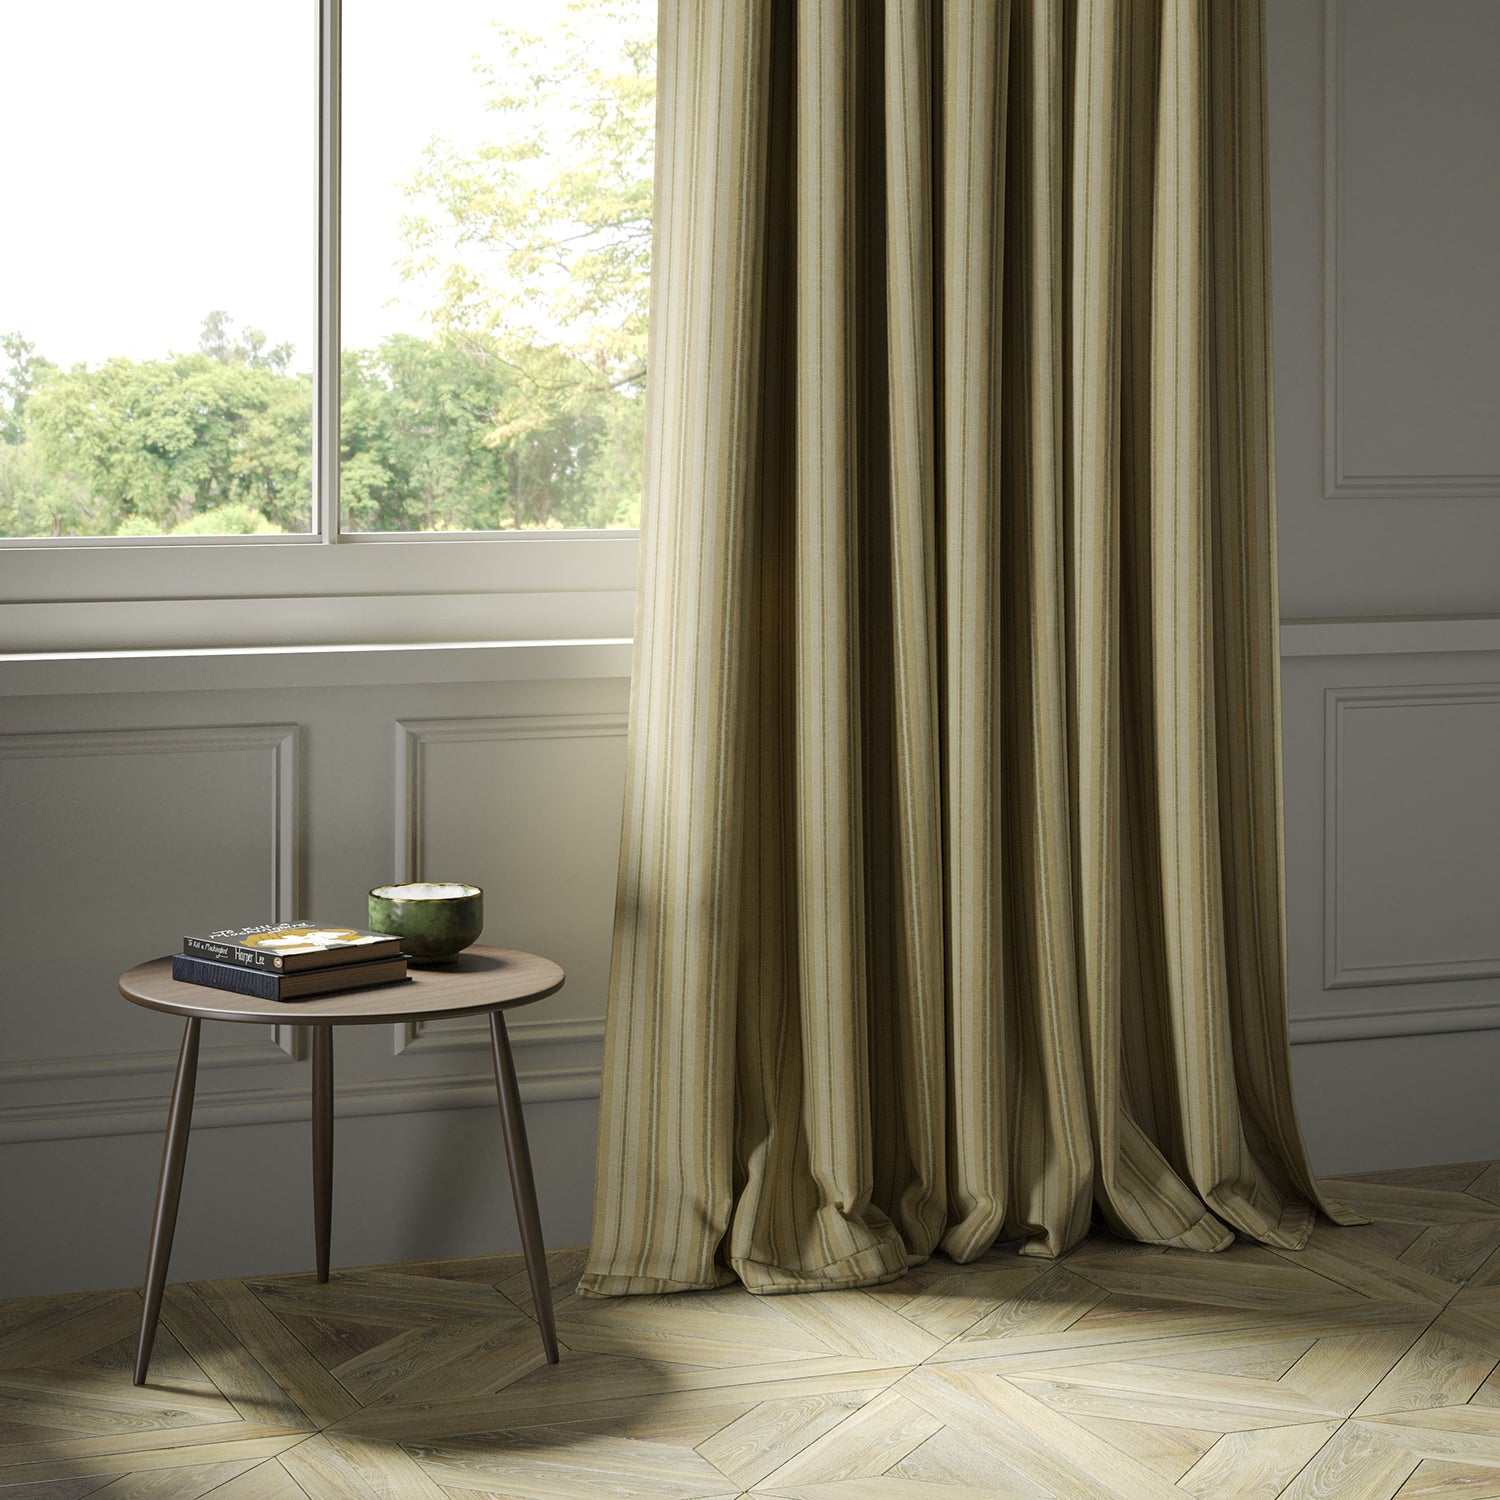 Curtains in a luxury Scottish cream and beige wool striped fabric